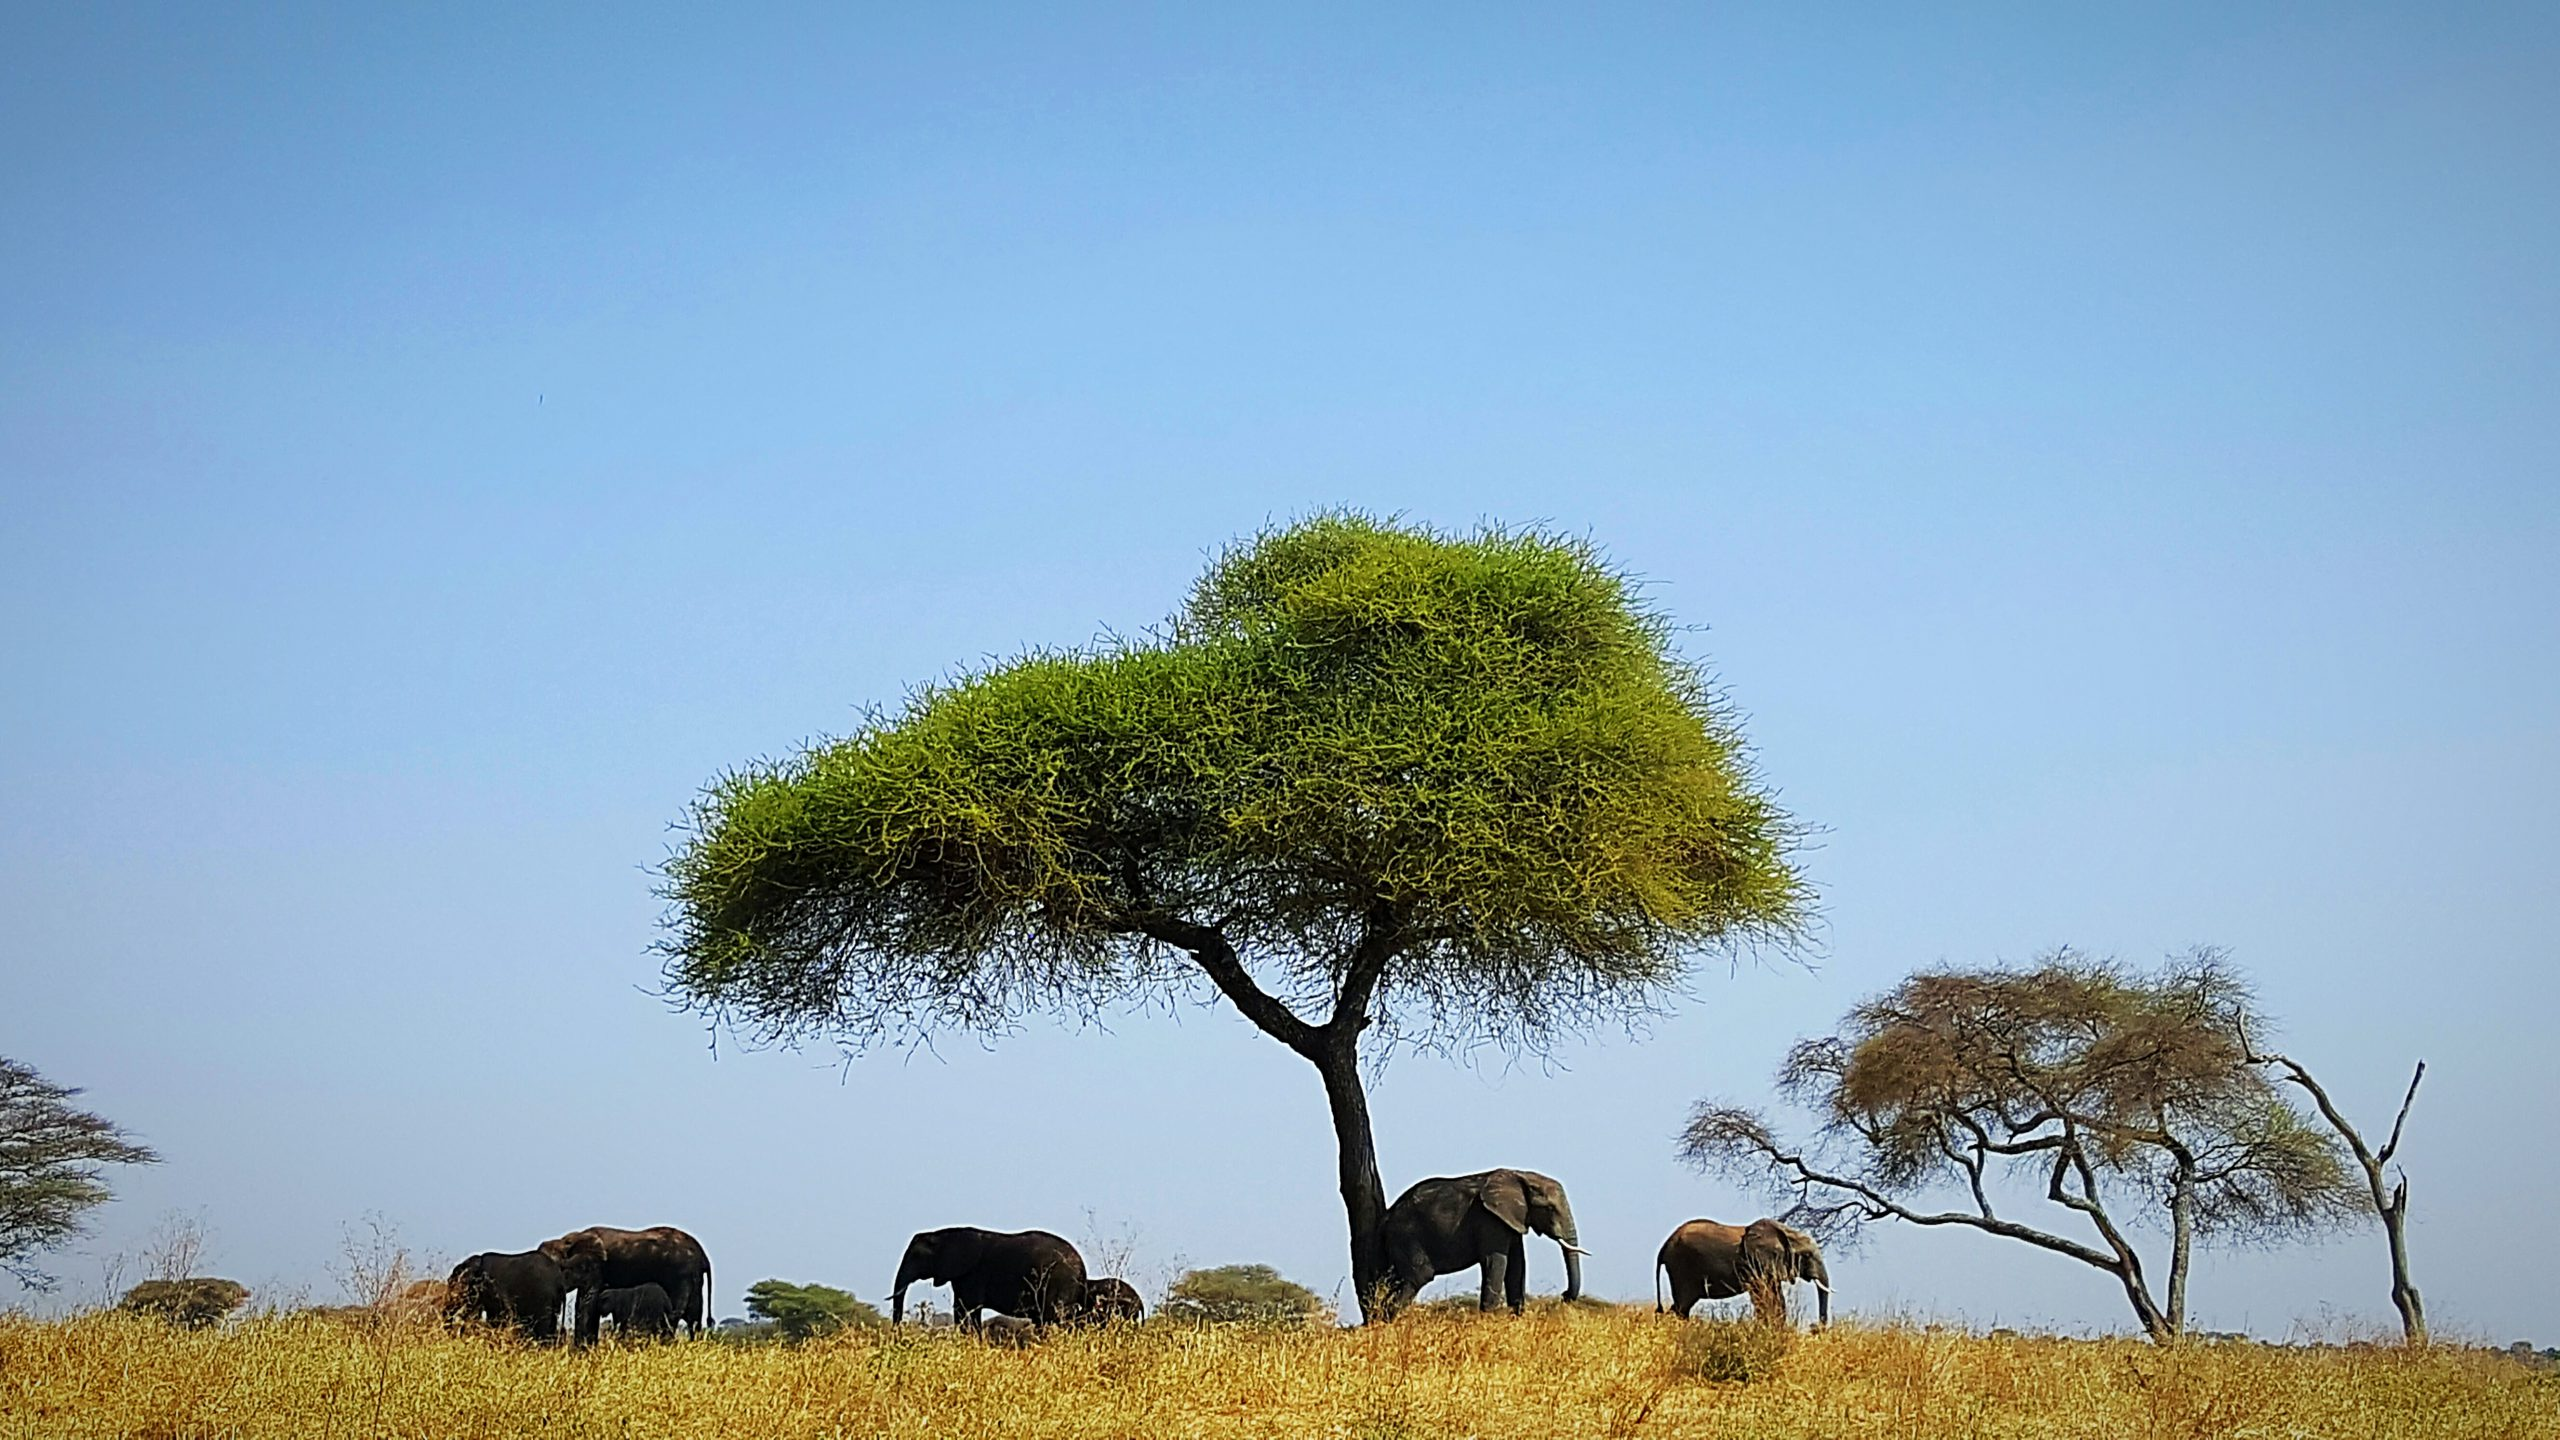 school_expedition_tanzania_trek_elephant_under_tree